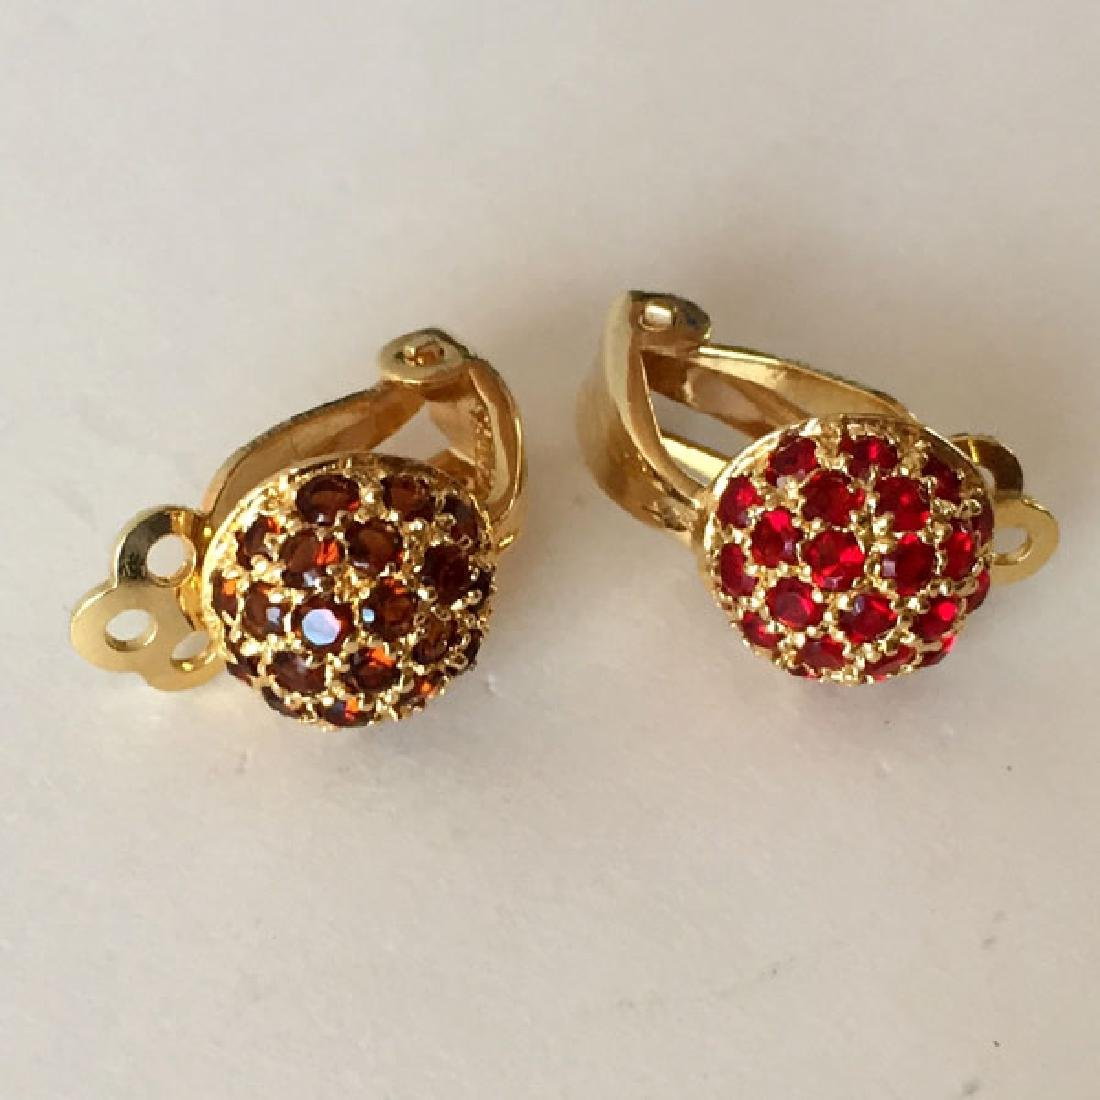 Gold plated sterling silver dome shaped ear clips with